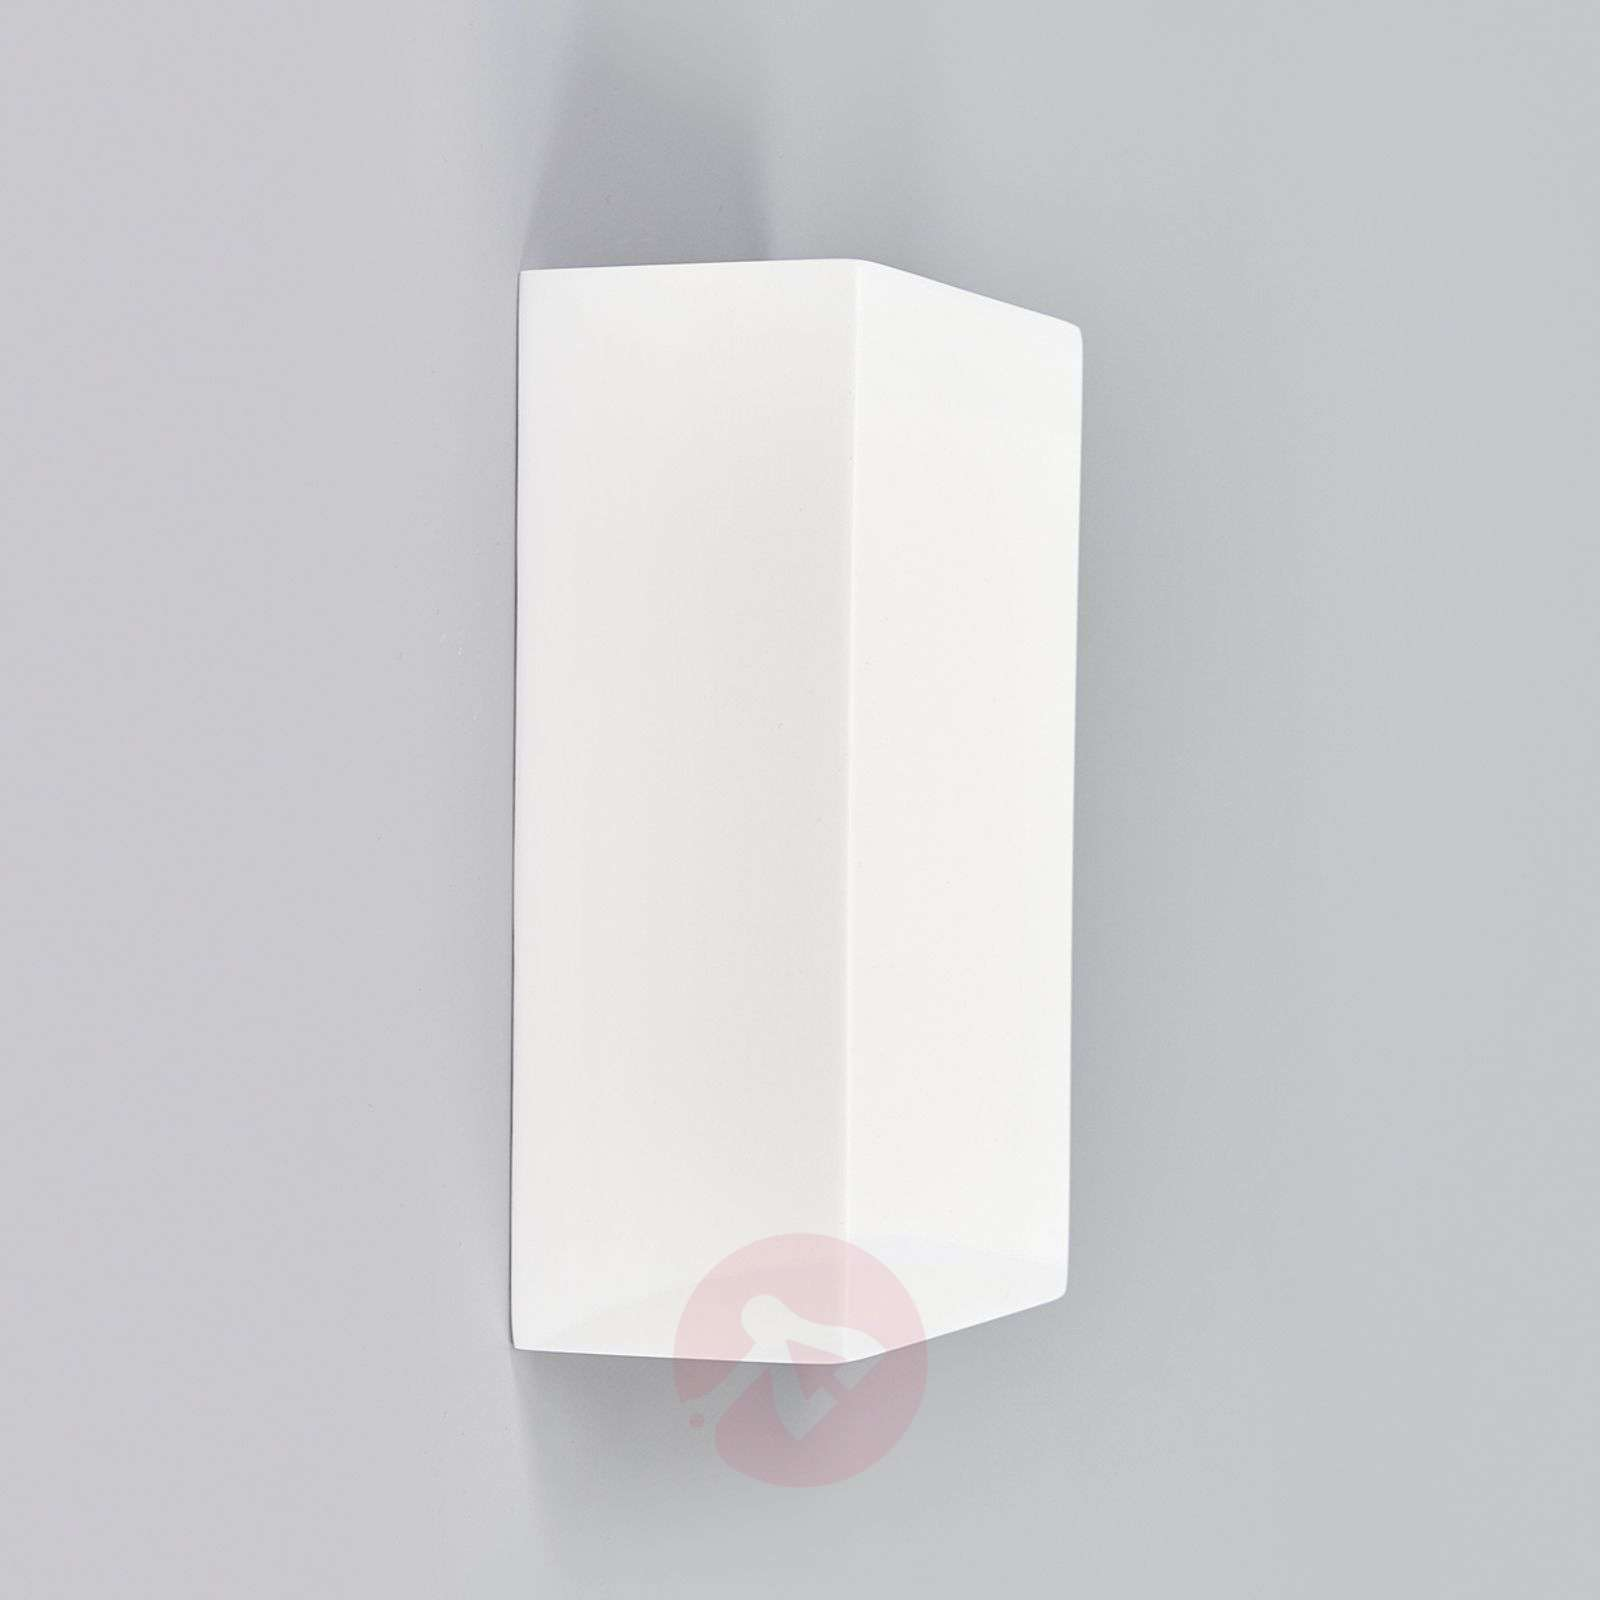 Fabiola plaster wall light-9613011-05